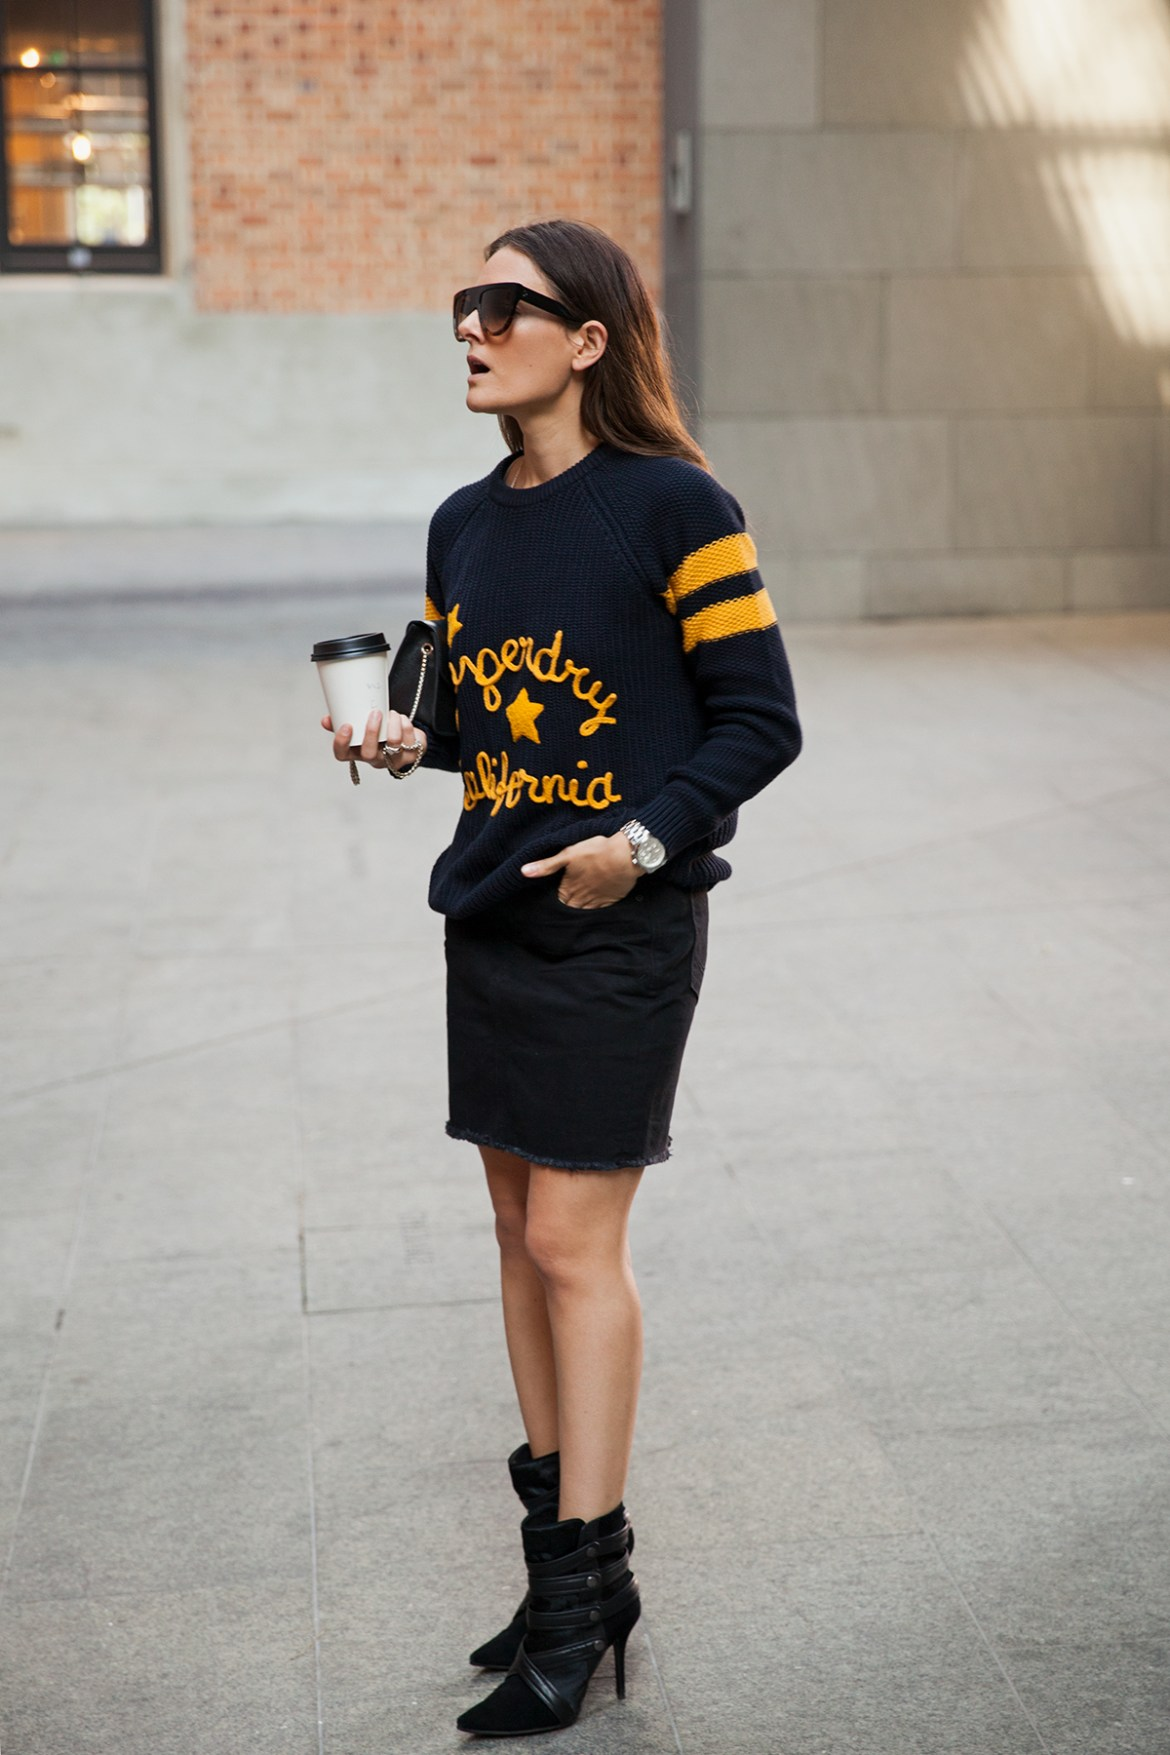 Superdry Perth Inspiring Wit varsity sweater knit and denim skirt store now open